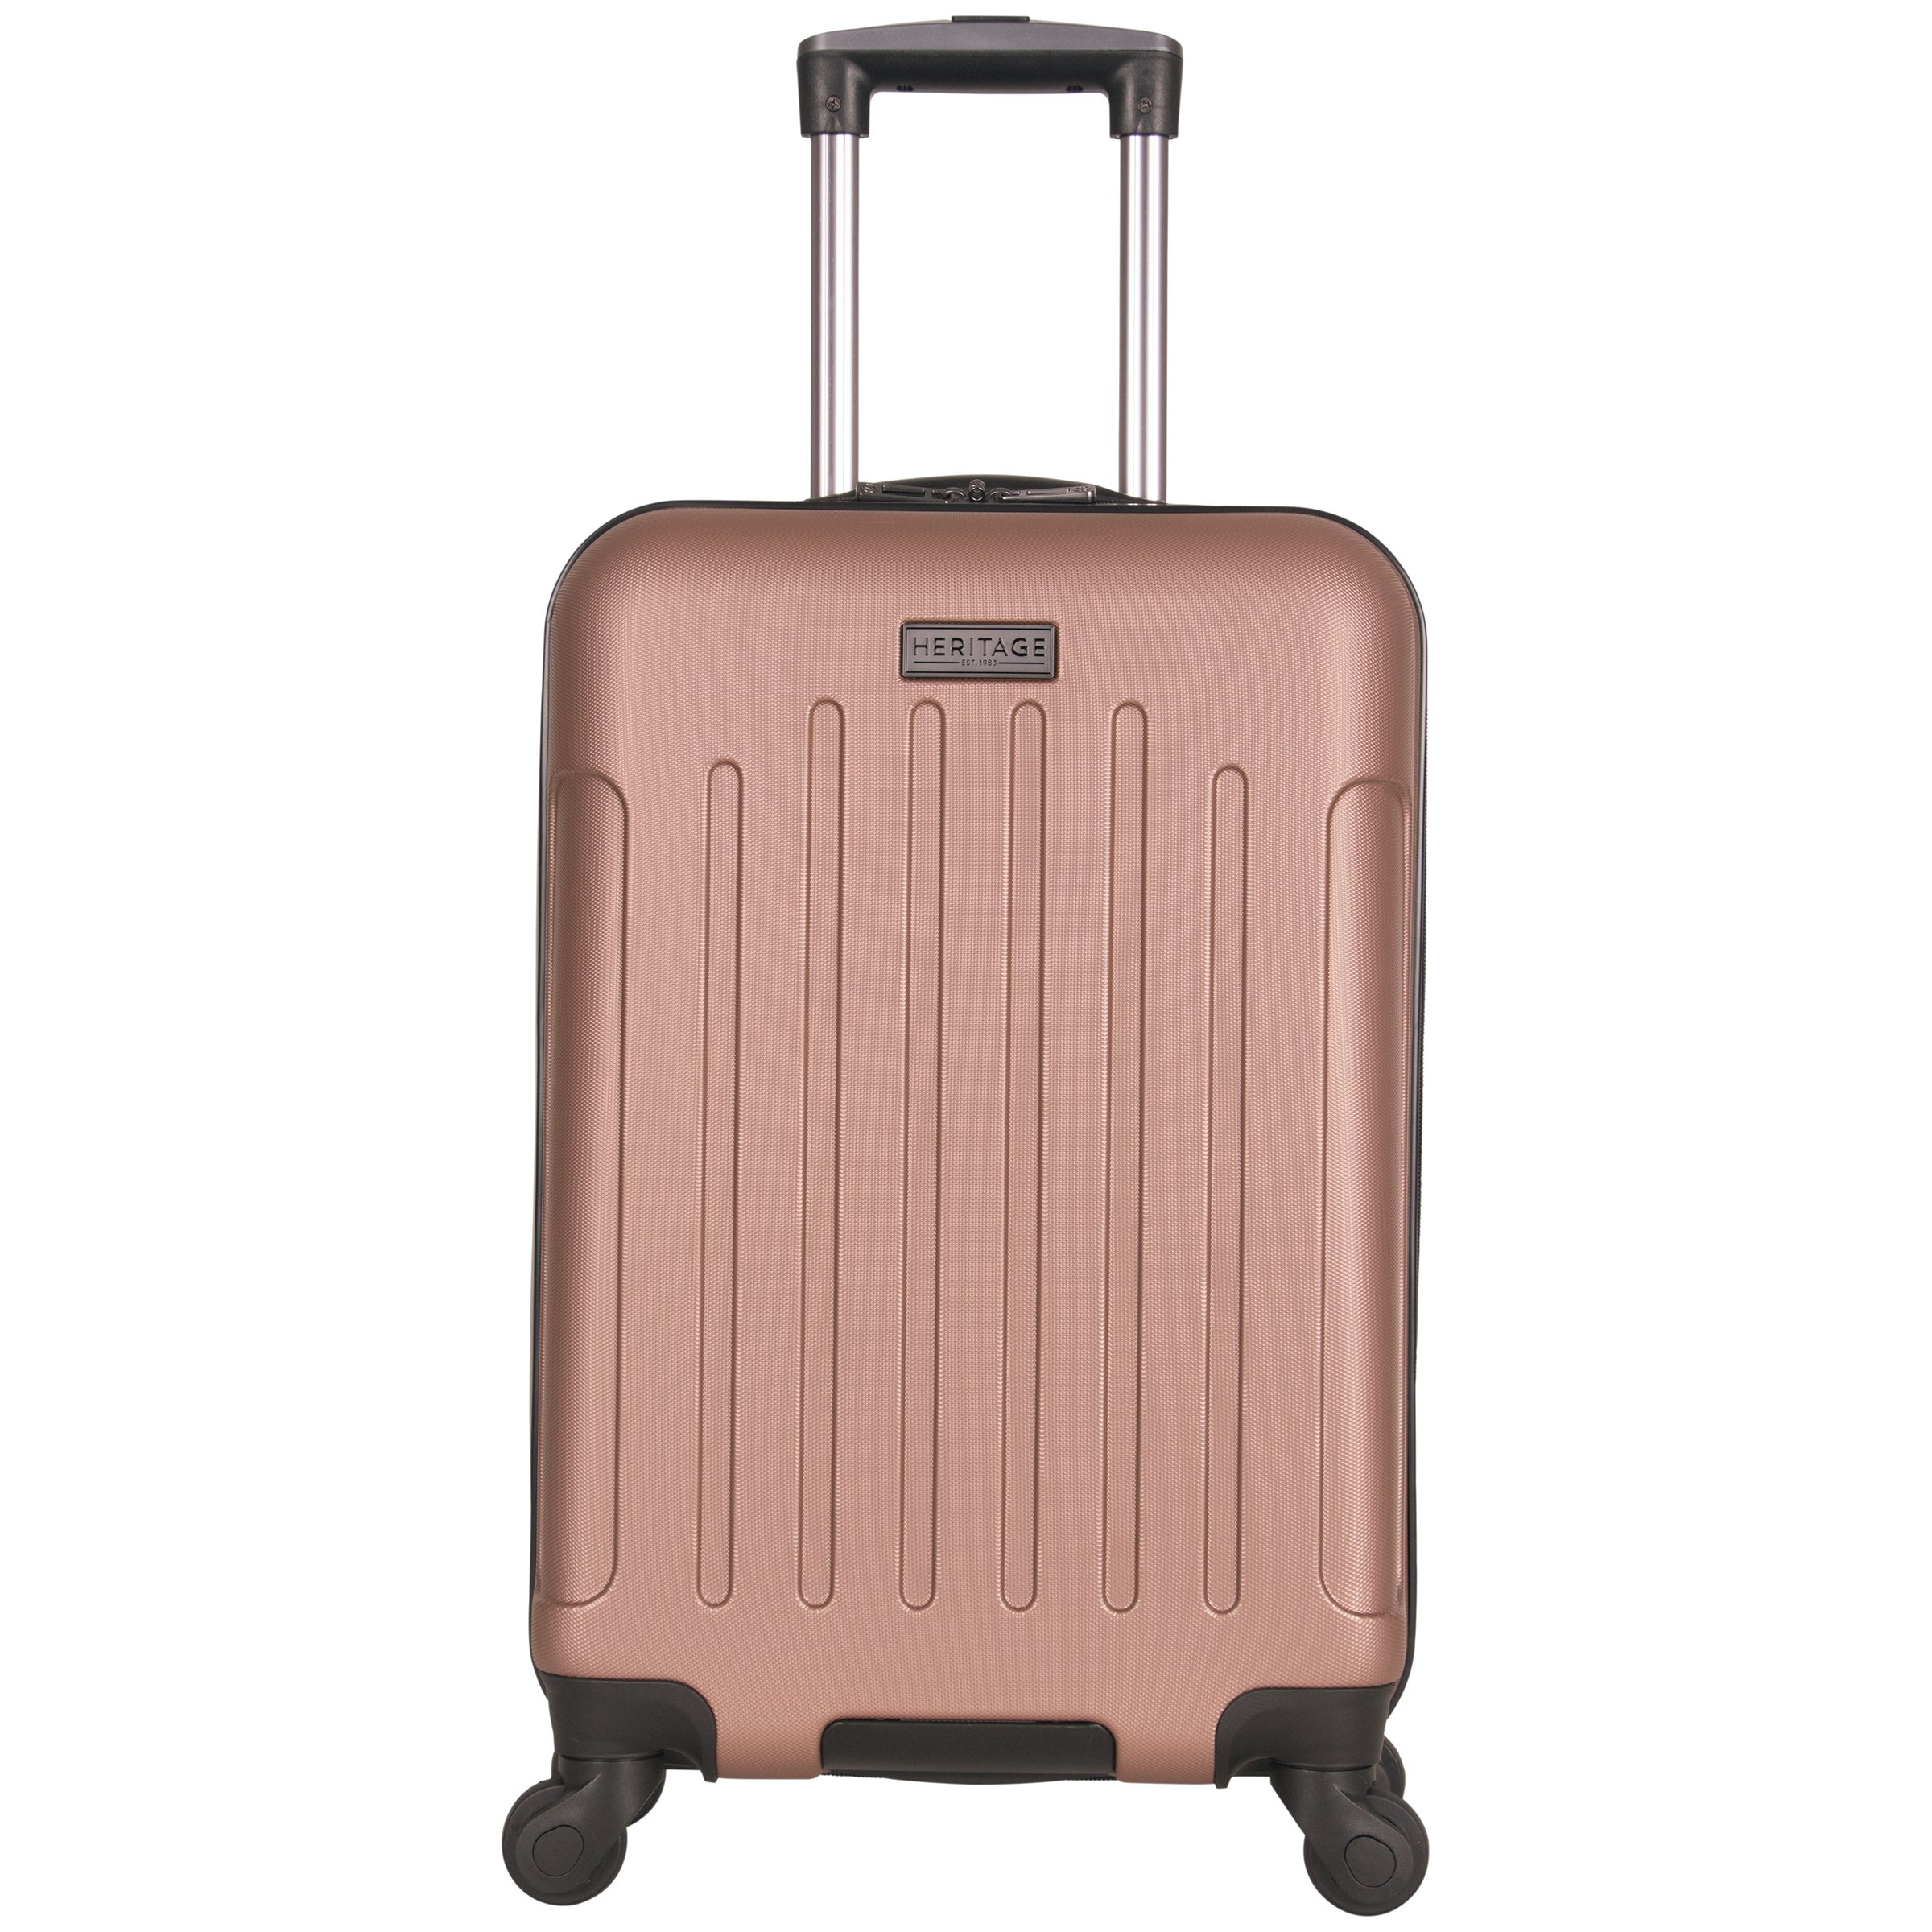 Heritage Travelware Lincoln Park 20'' Abs 4-Wheel Carry on Luggage, Rose Gold